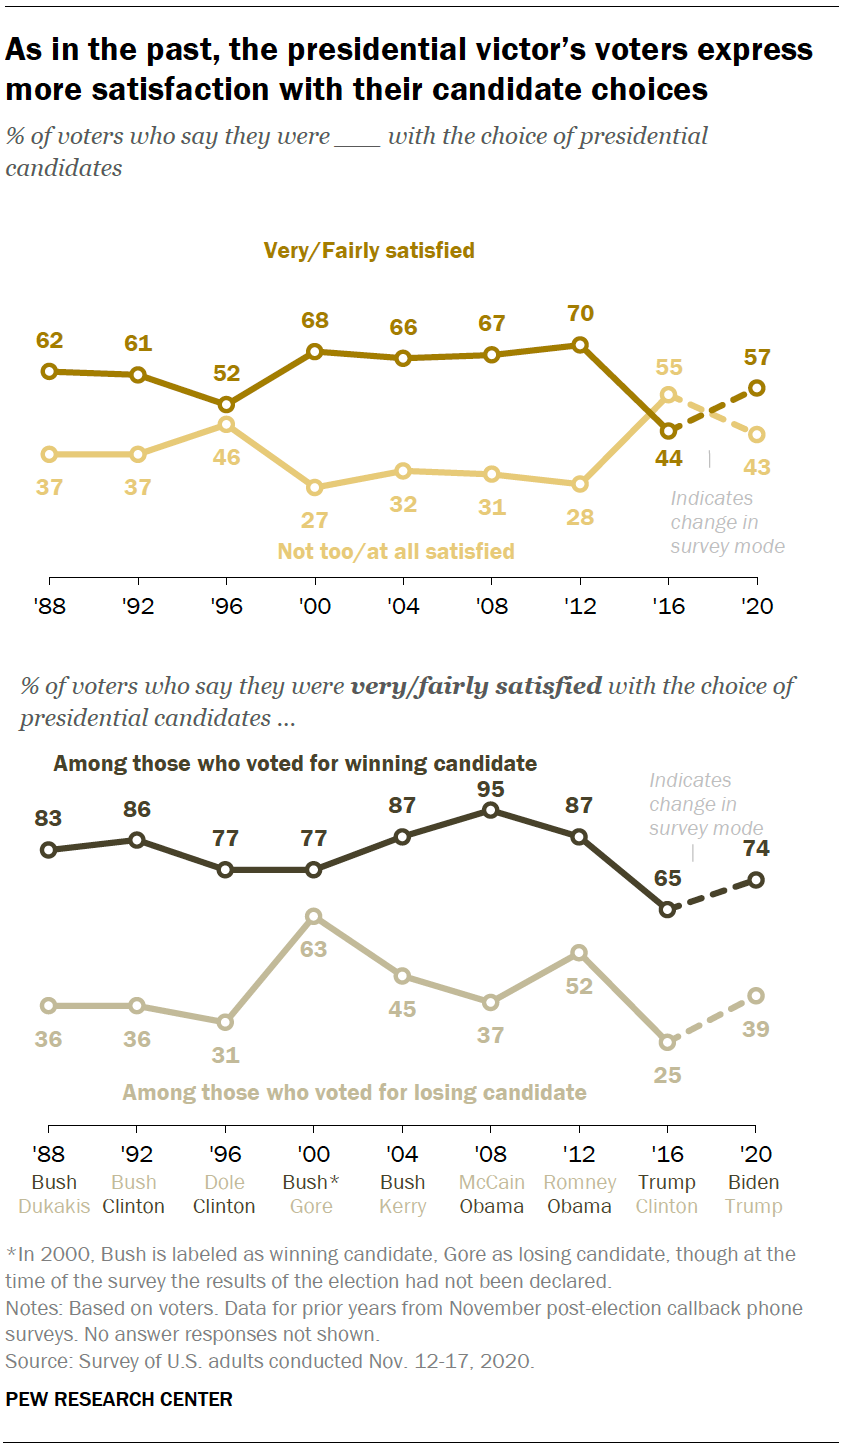 As in the past, the presidential victor's voters express more satisfaction with their candidate choices